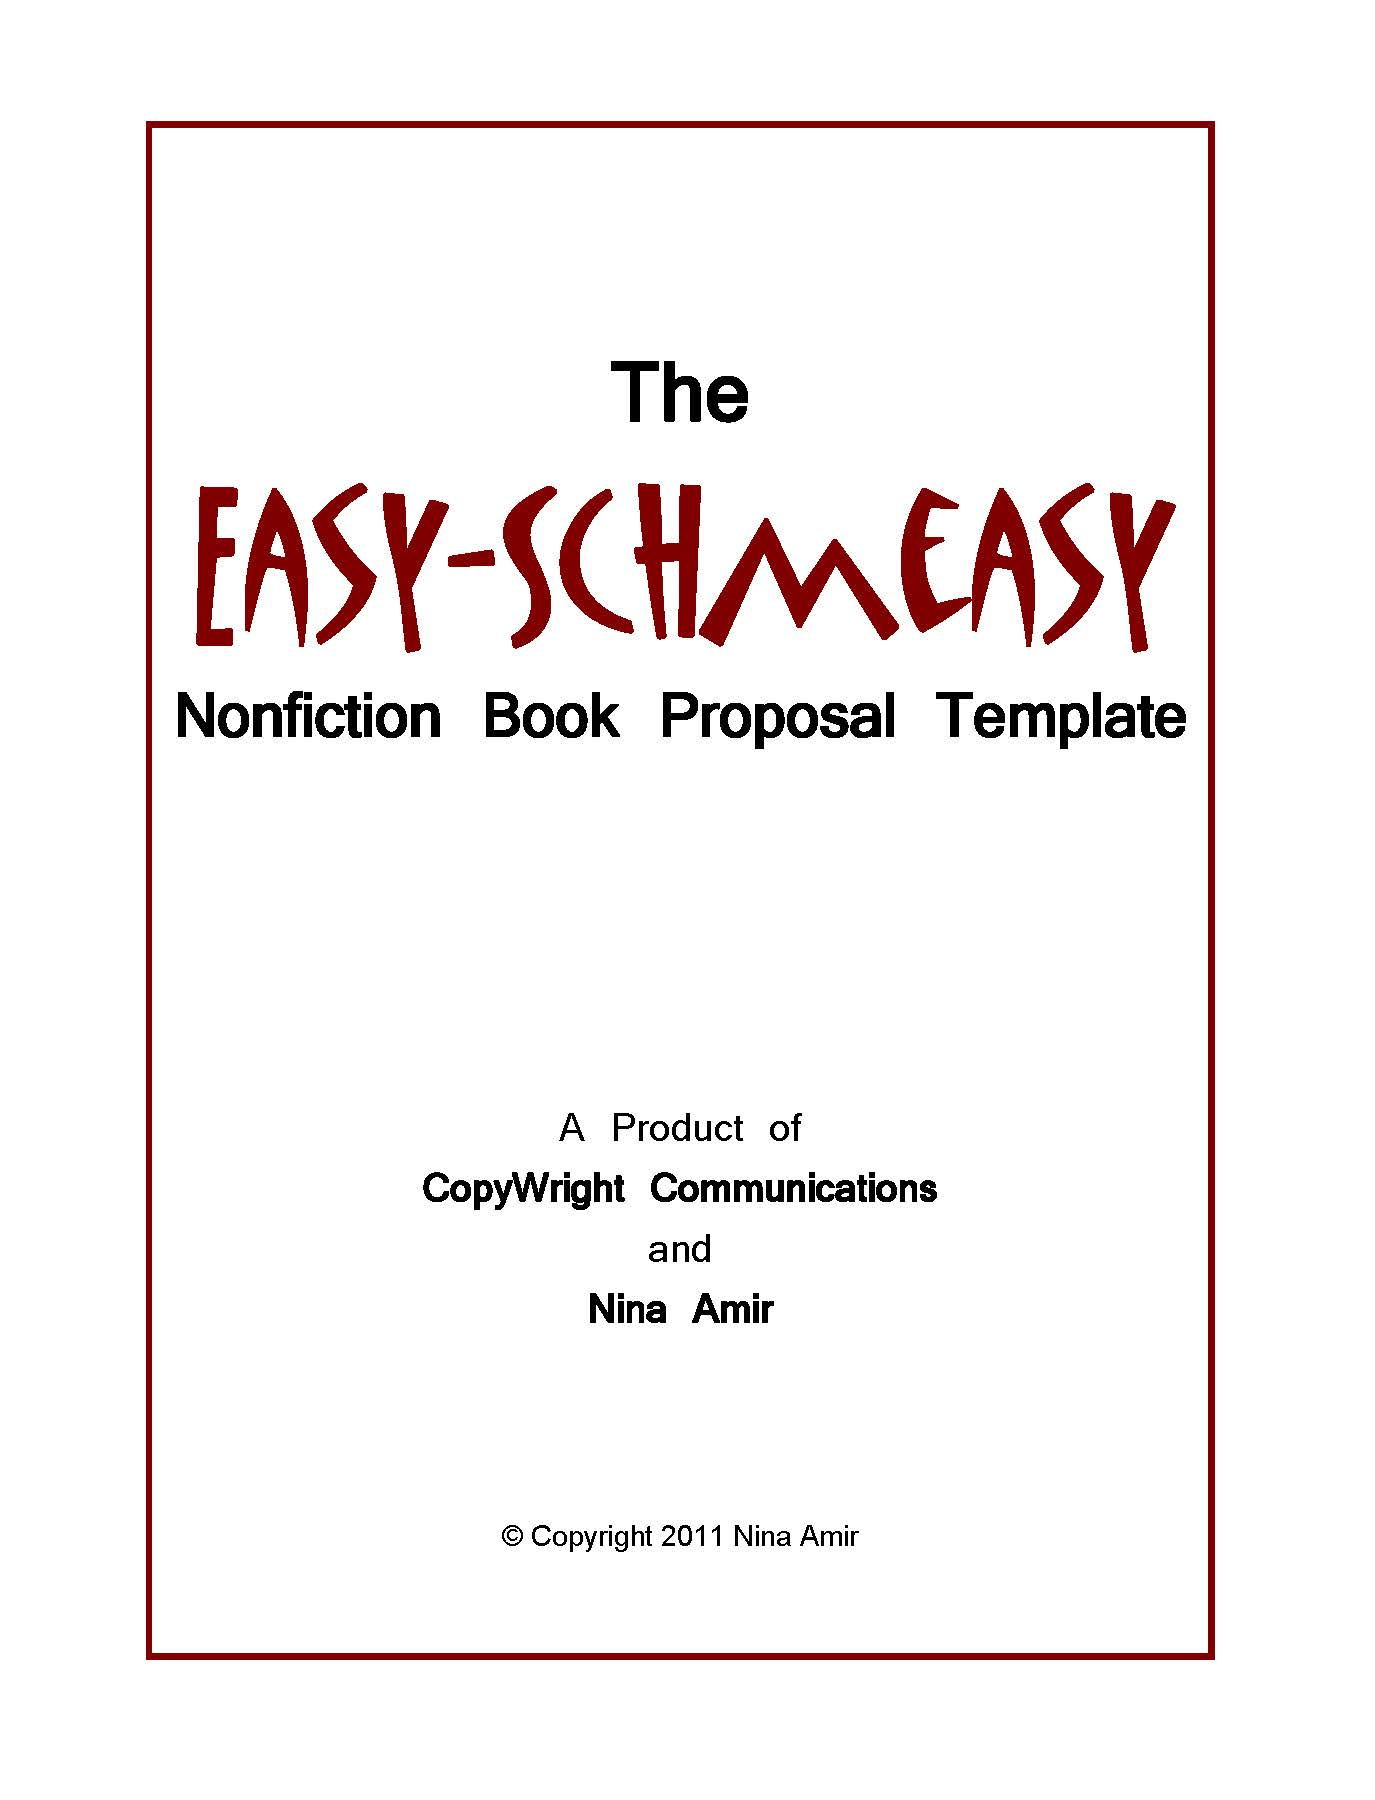 How To Write A Nonfiction Proposal